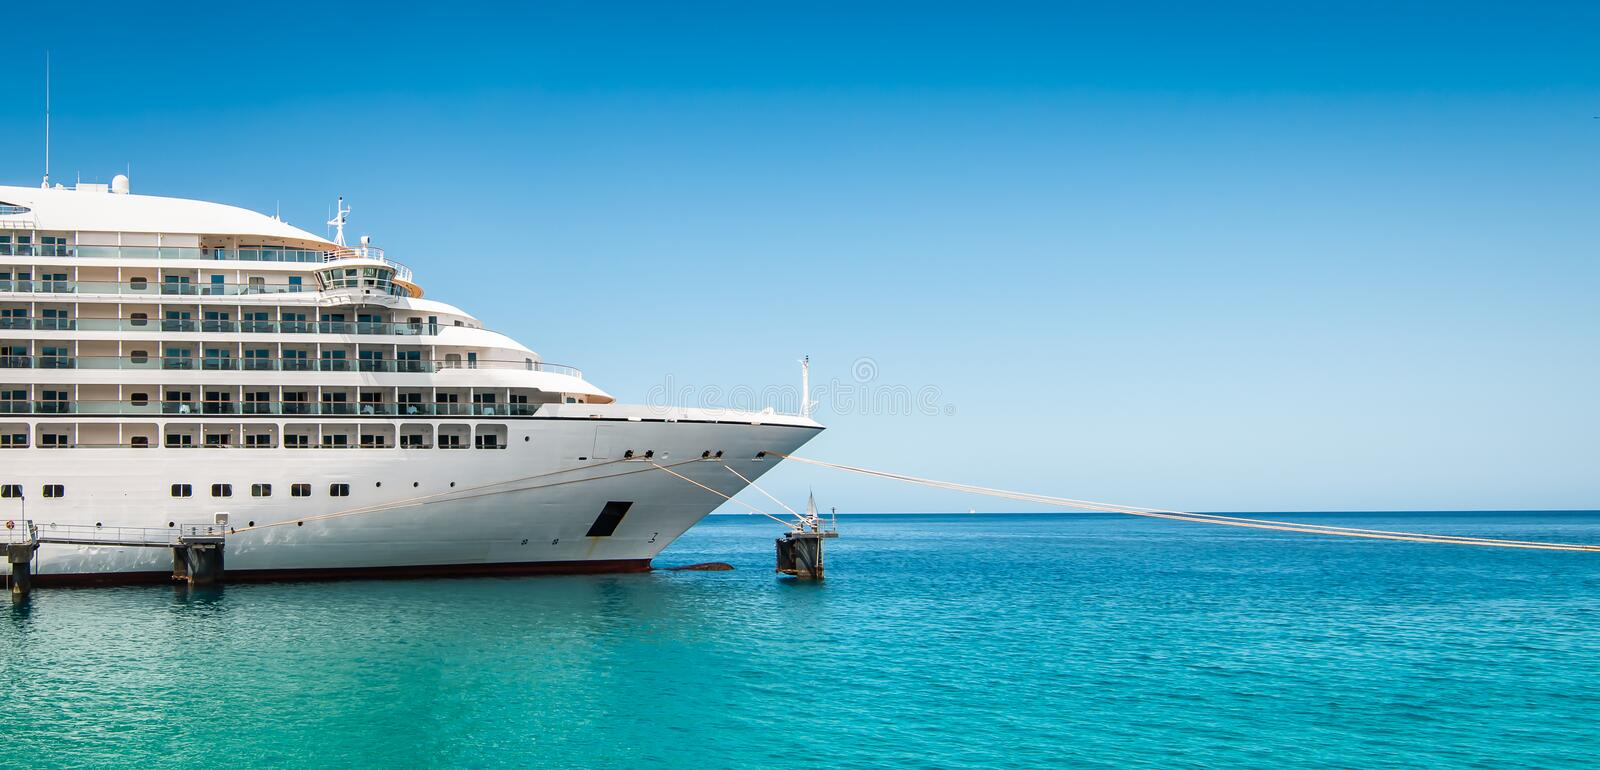 Side view and bow of a docked cruise ship on a summer day with clear blue sky royalty free stock photo